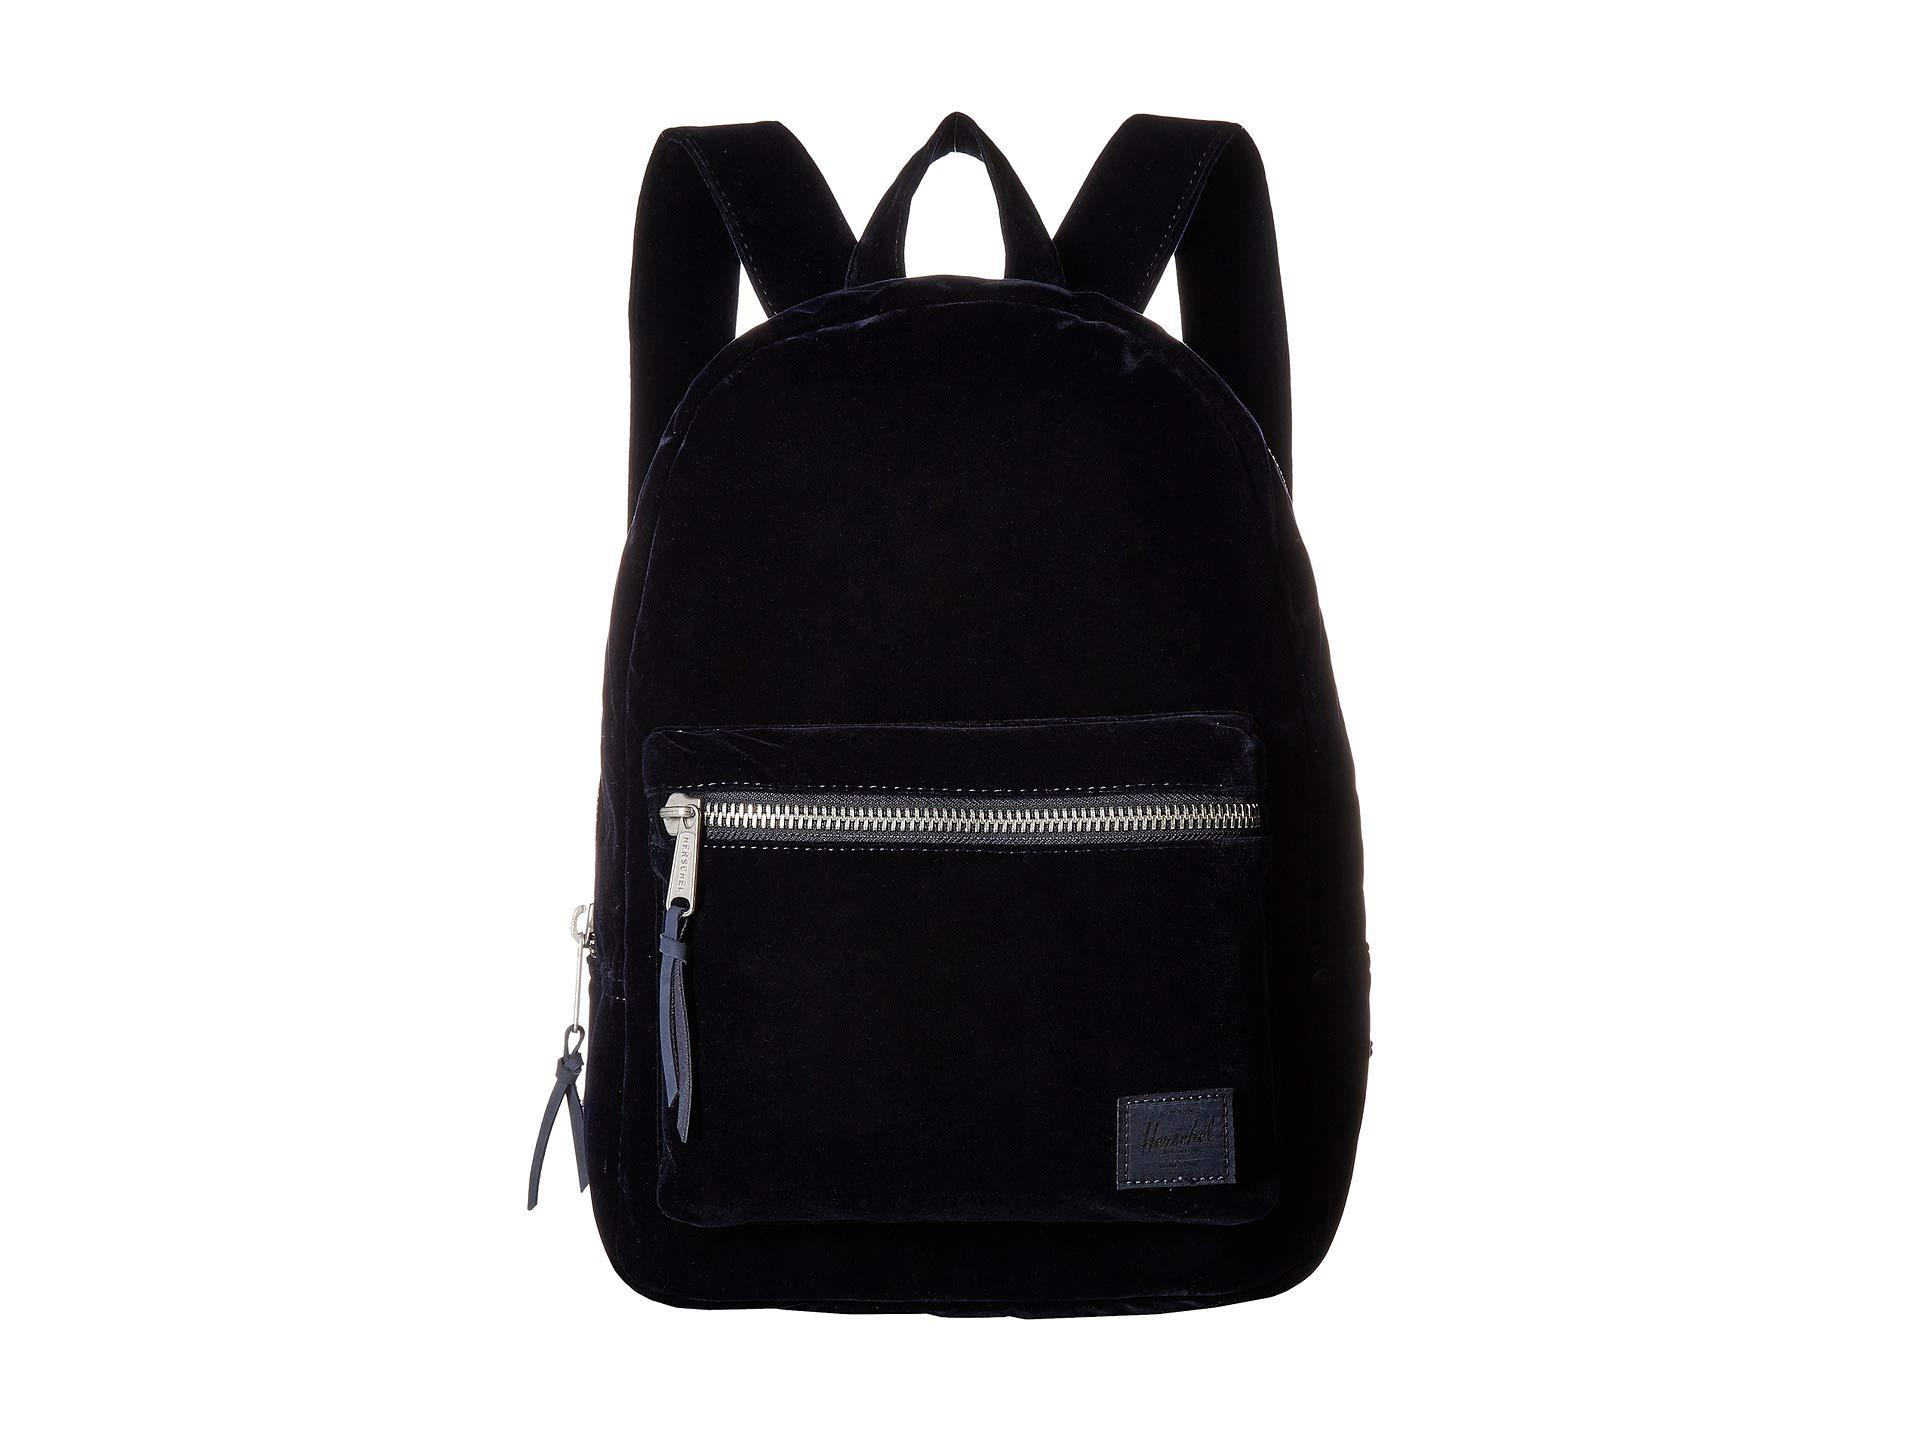 8e5d5052387 Lyst - Herschel Supply Co. Grove X-small in Black